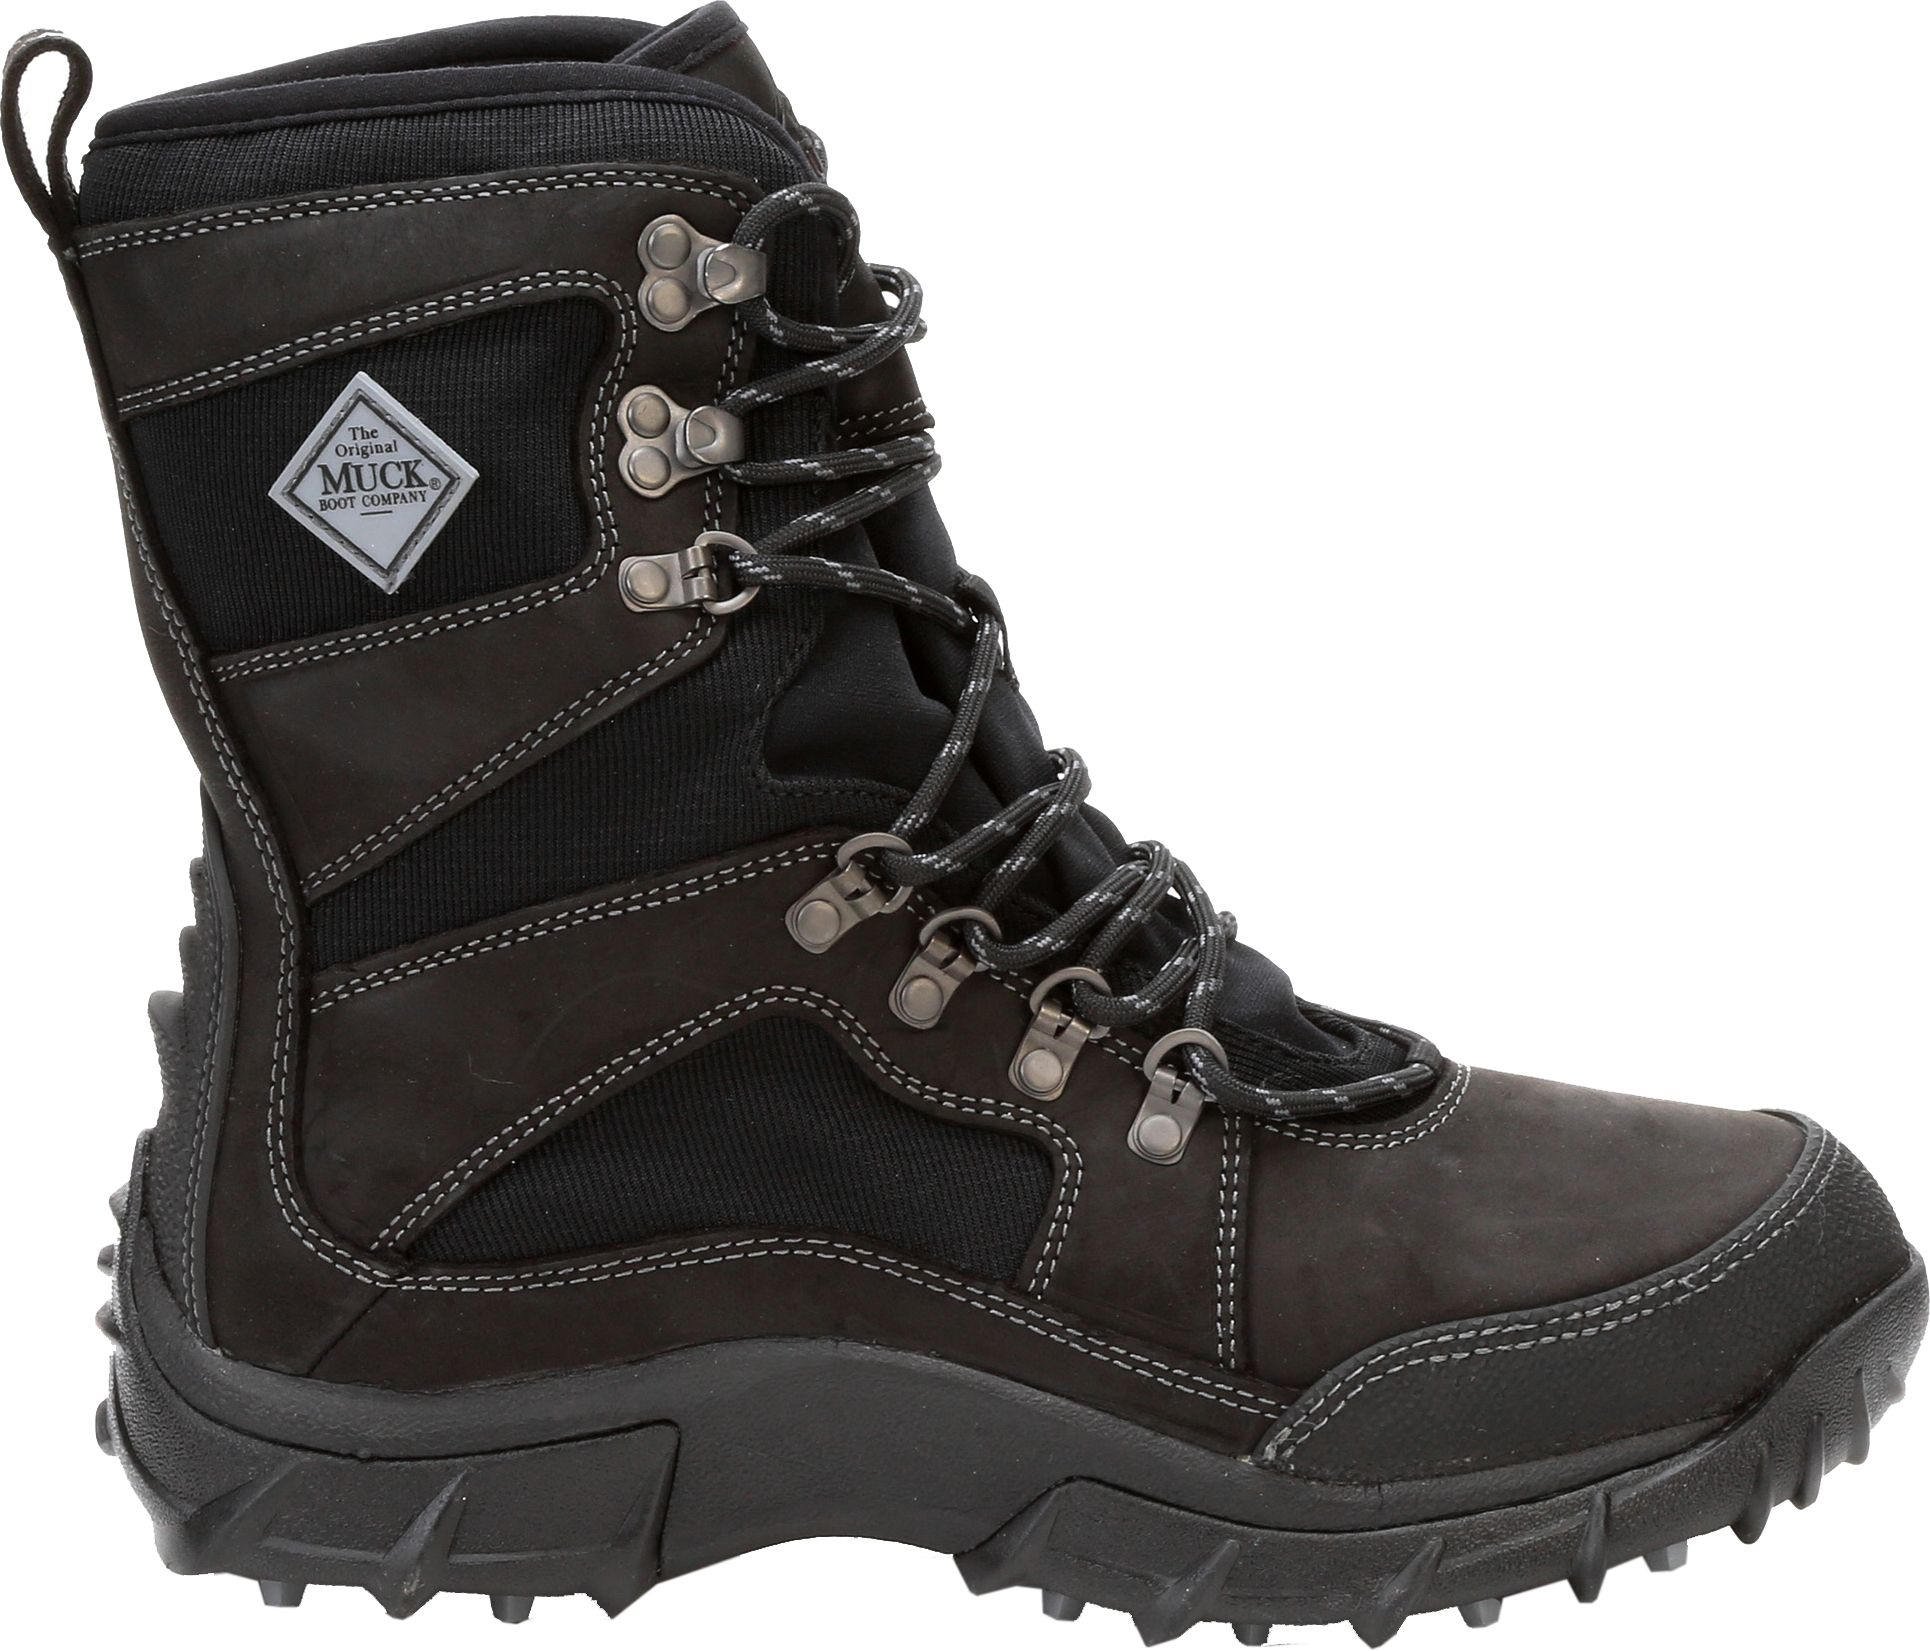 Muck Boots for Men | DICK'S Sporting Goods